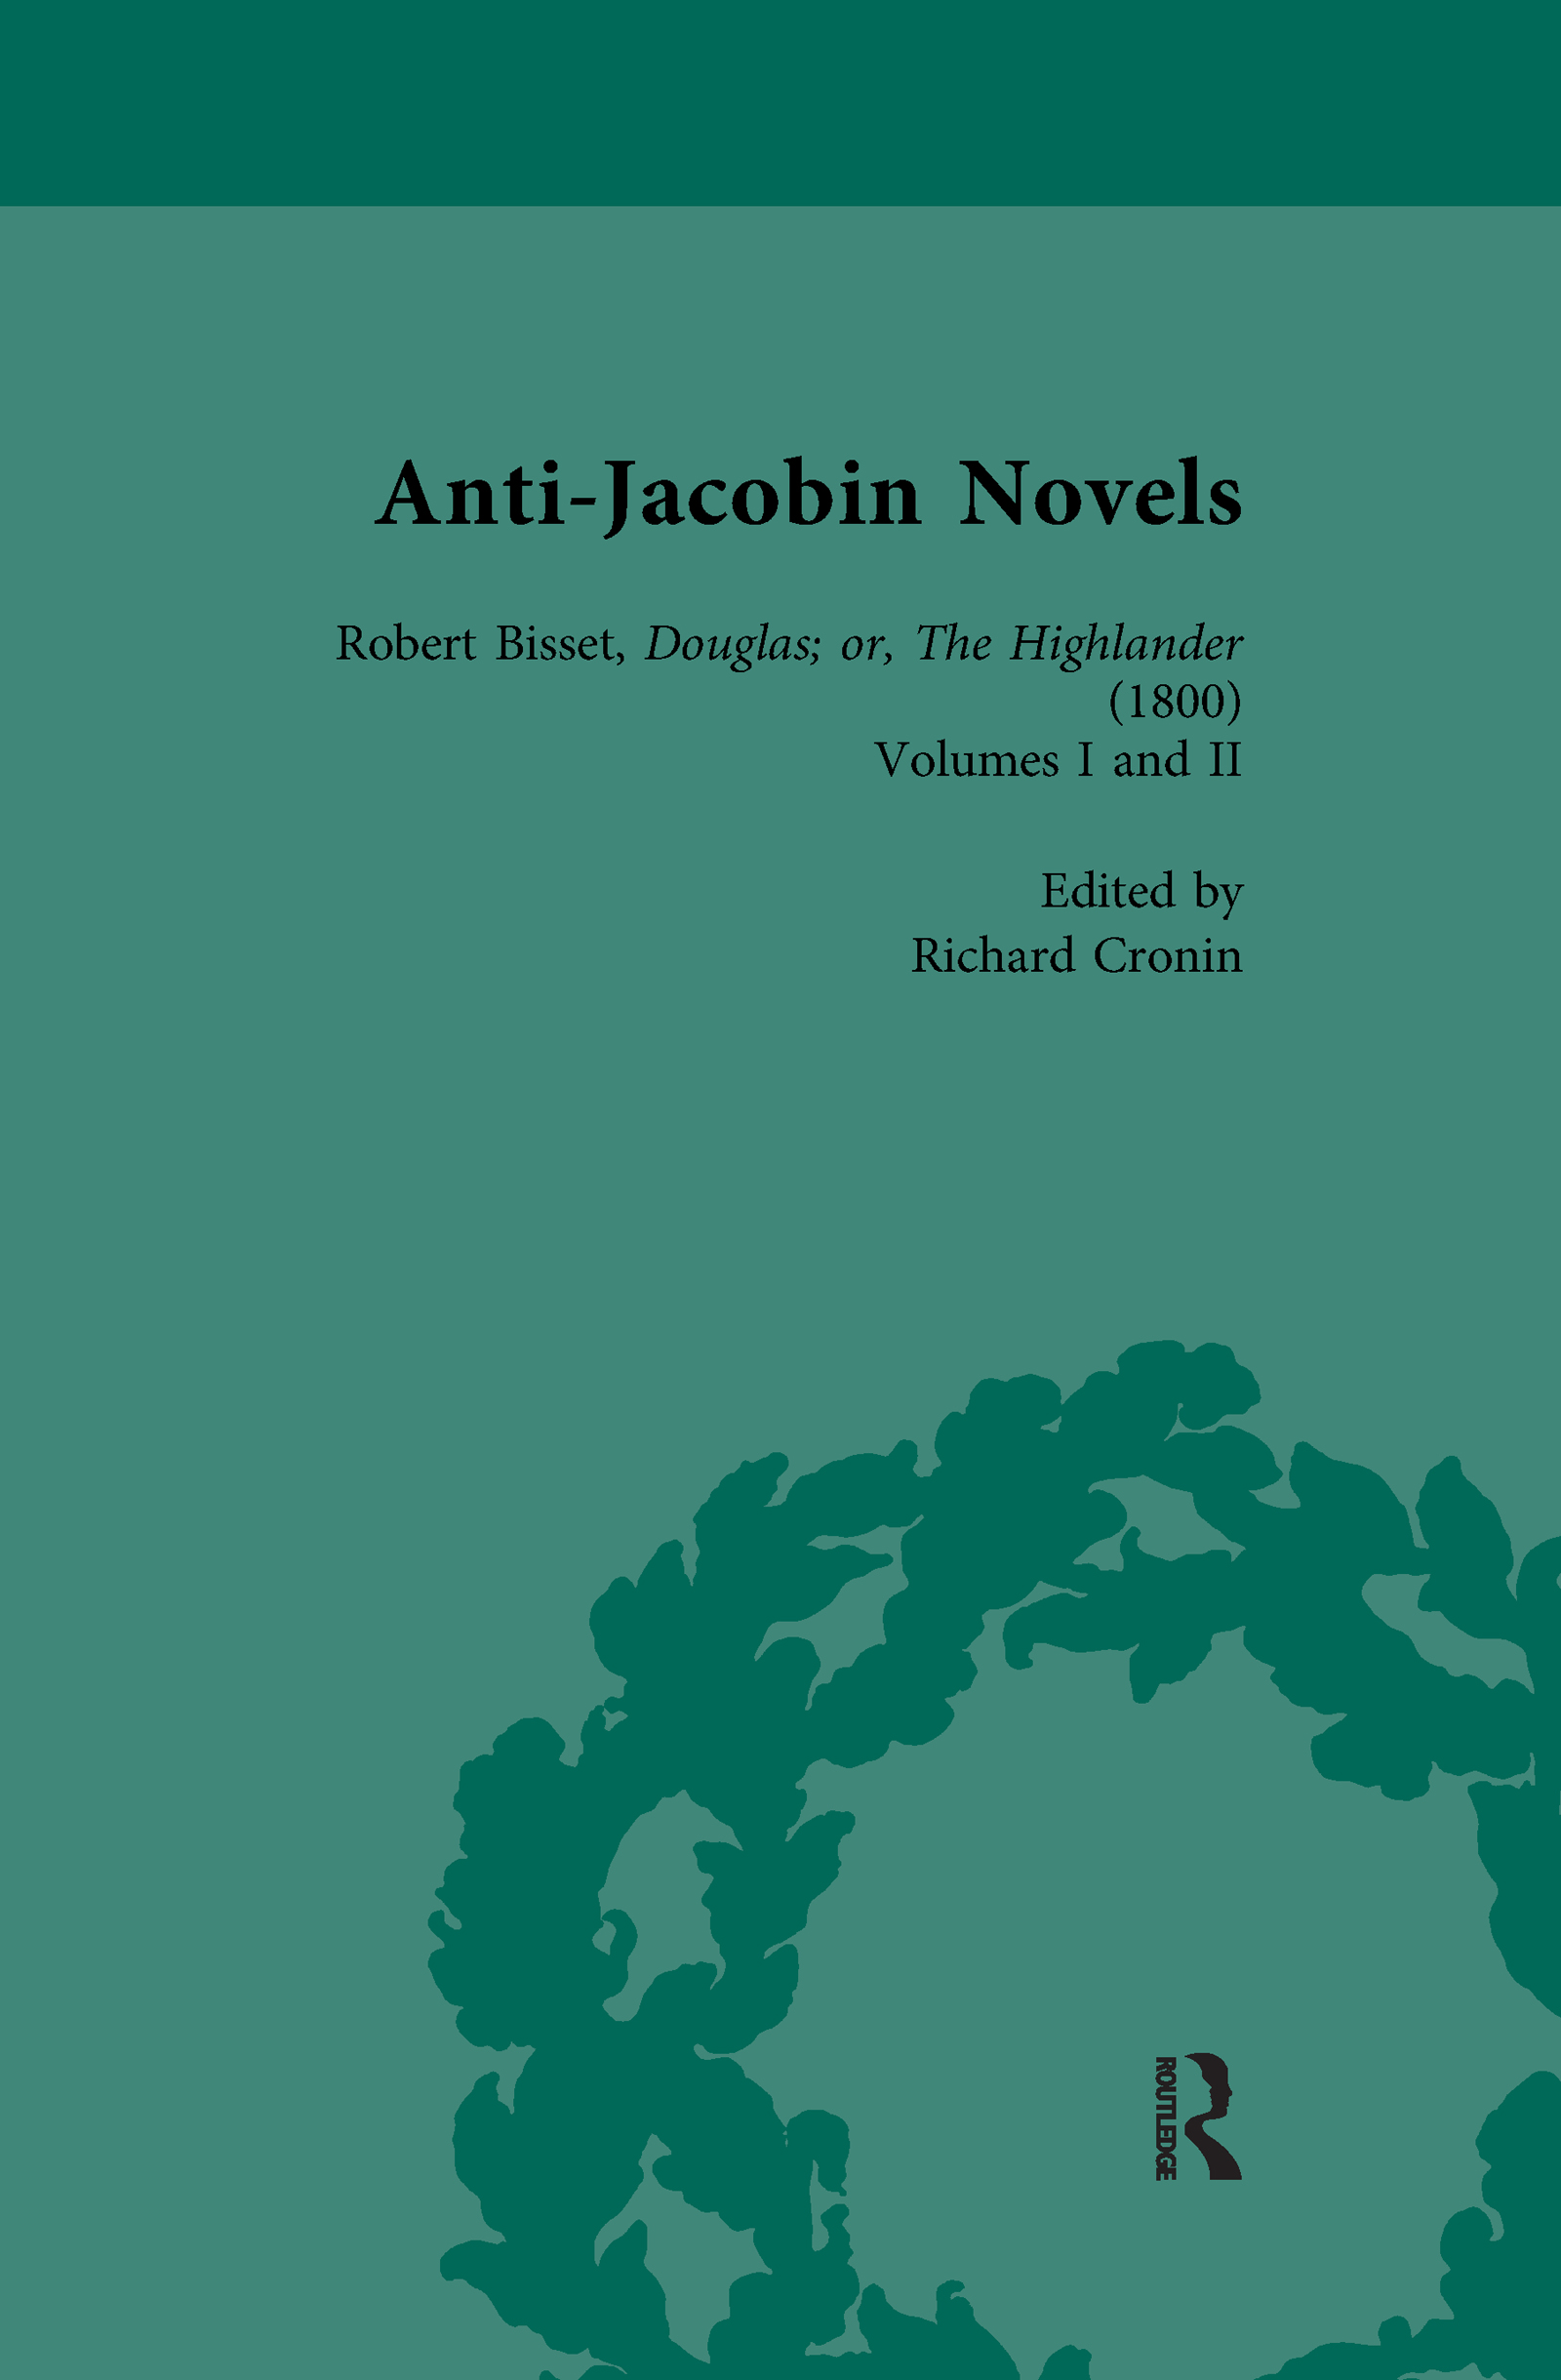 Anti-Jacobin Novels